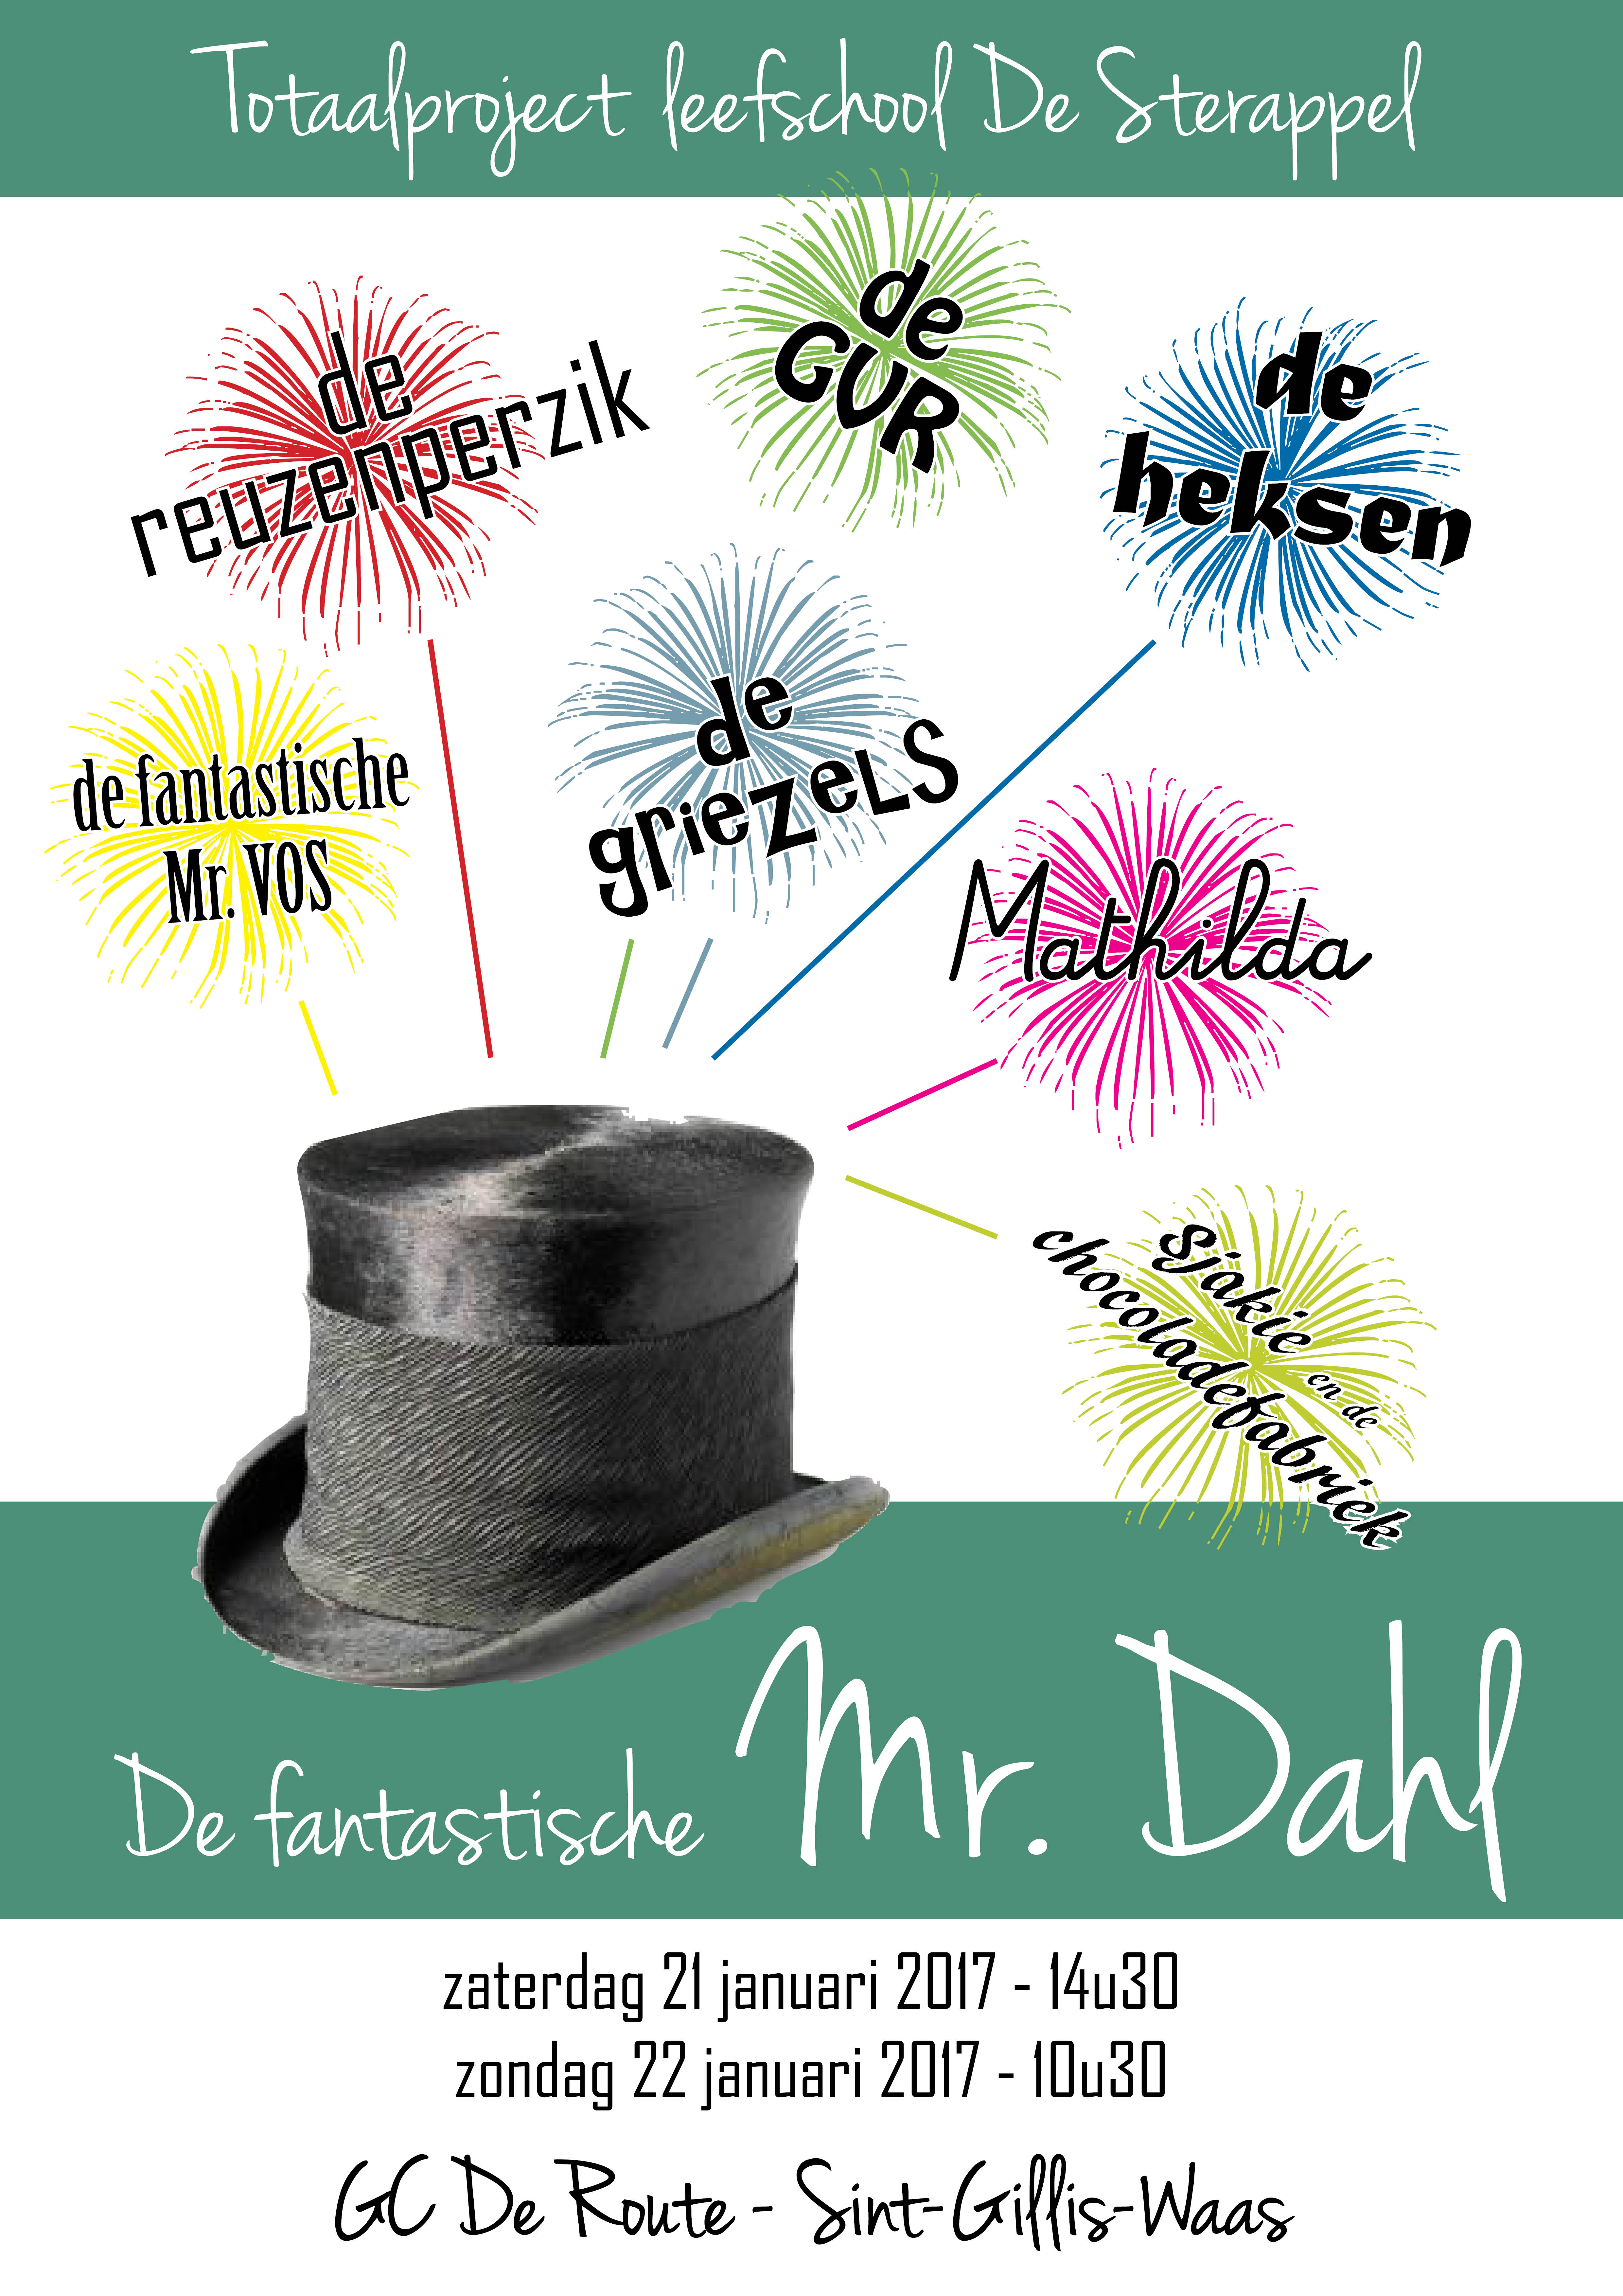 Totaalproject 2017 leefschool De Sterappel de fantastische mr. Dahl